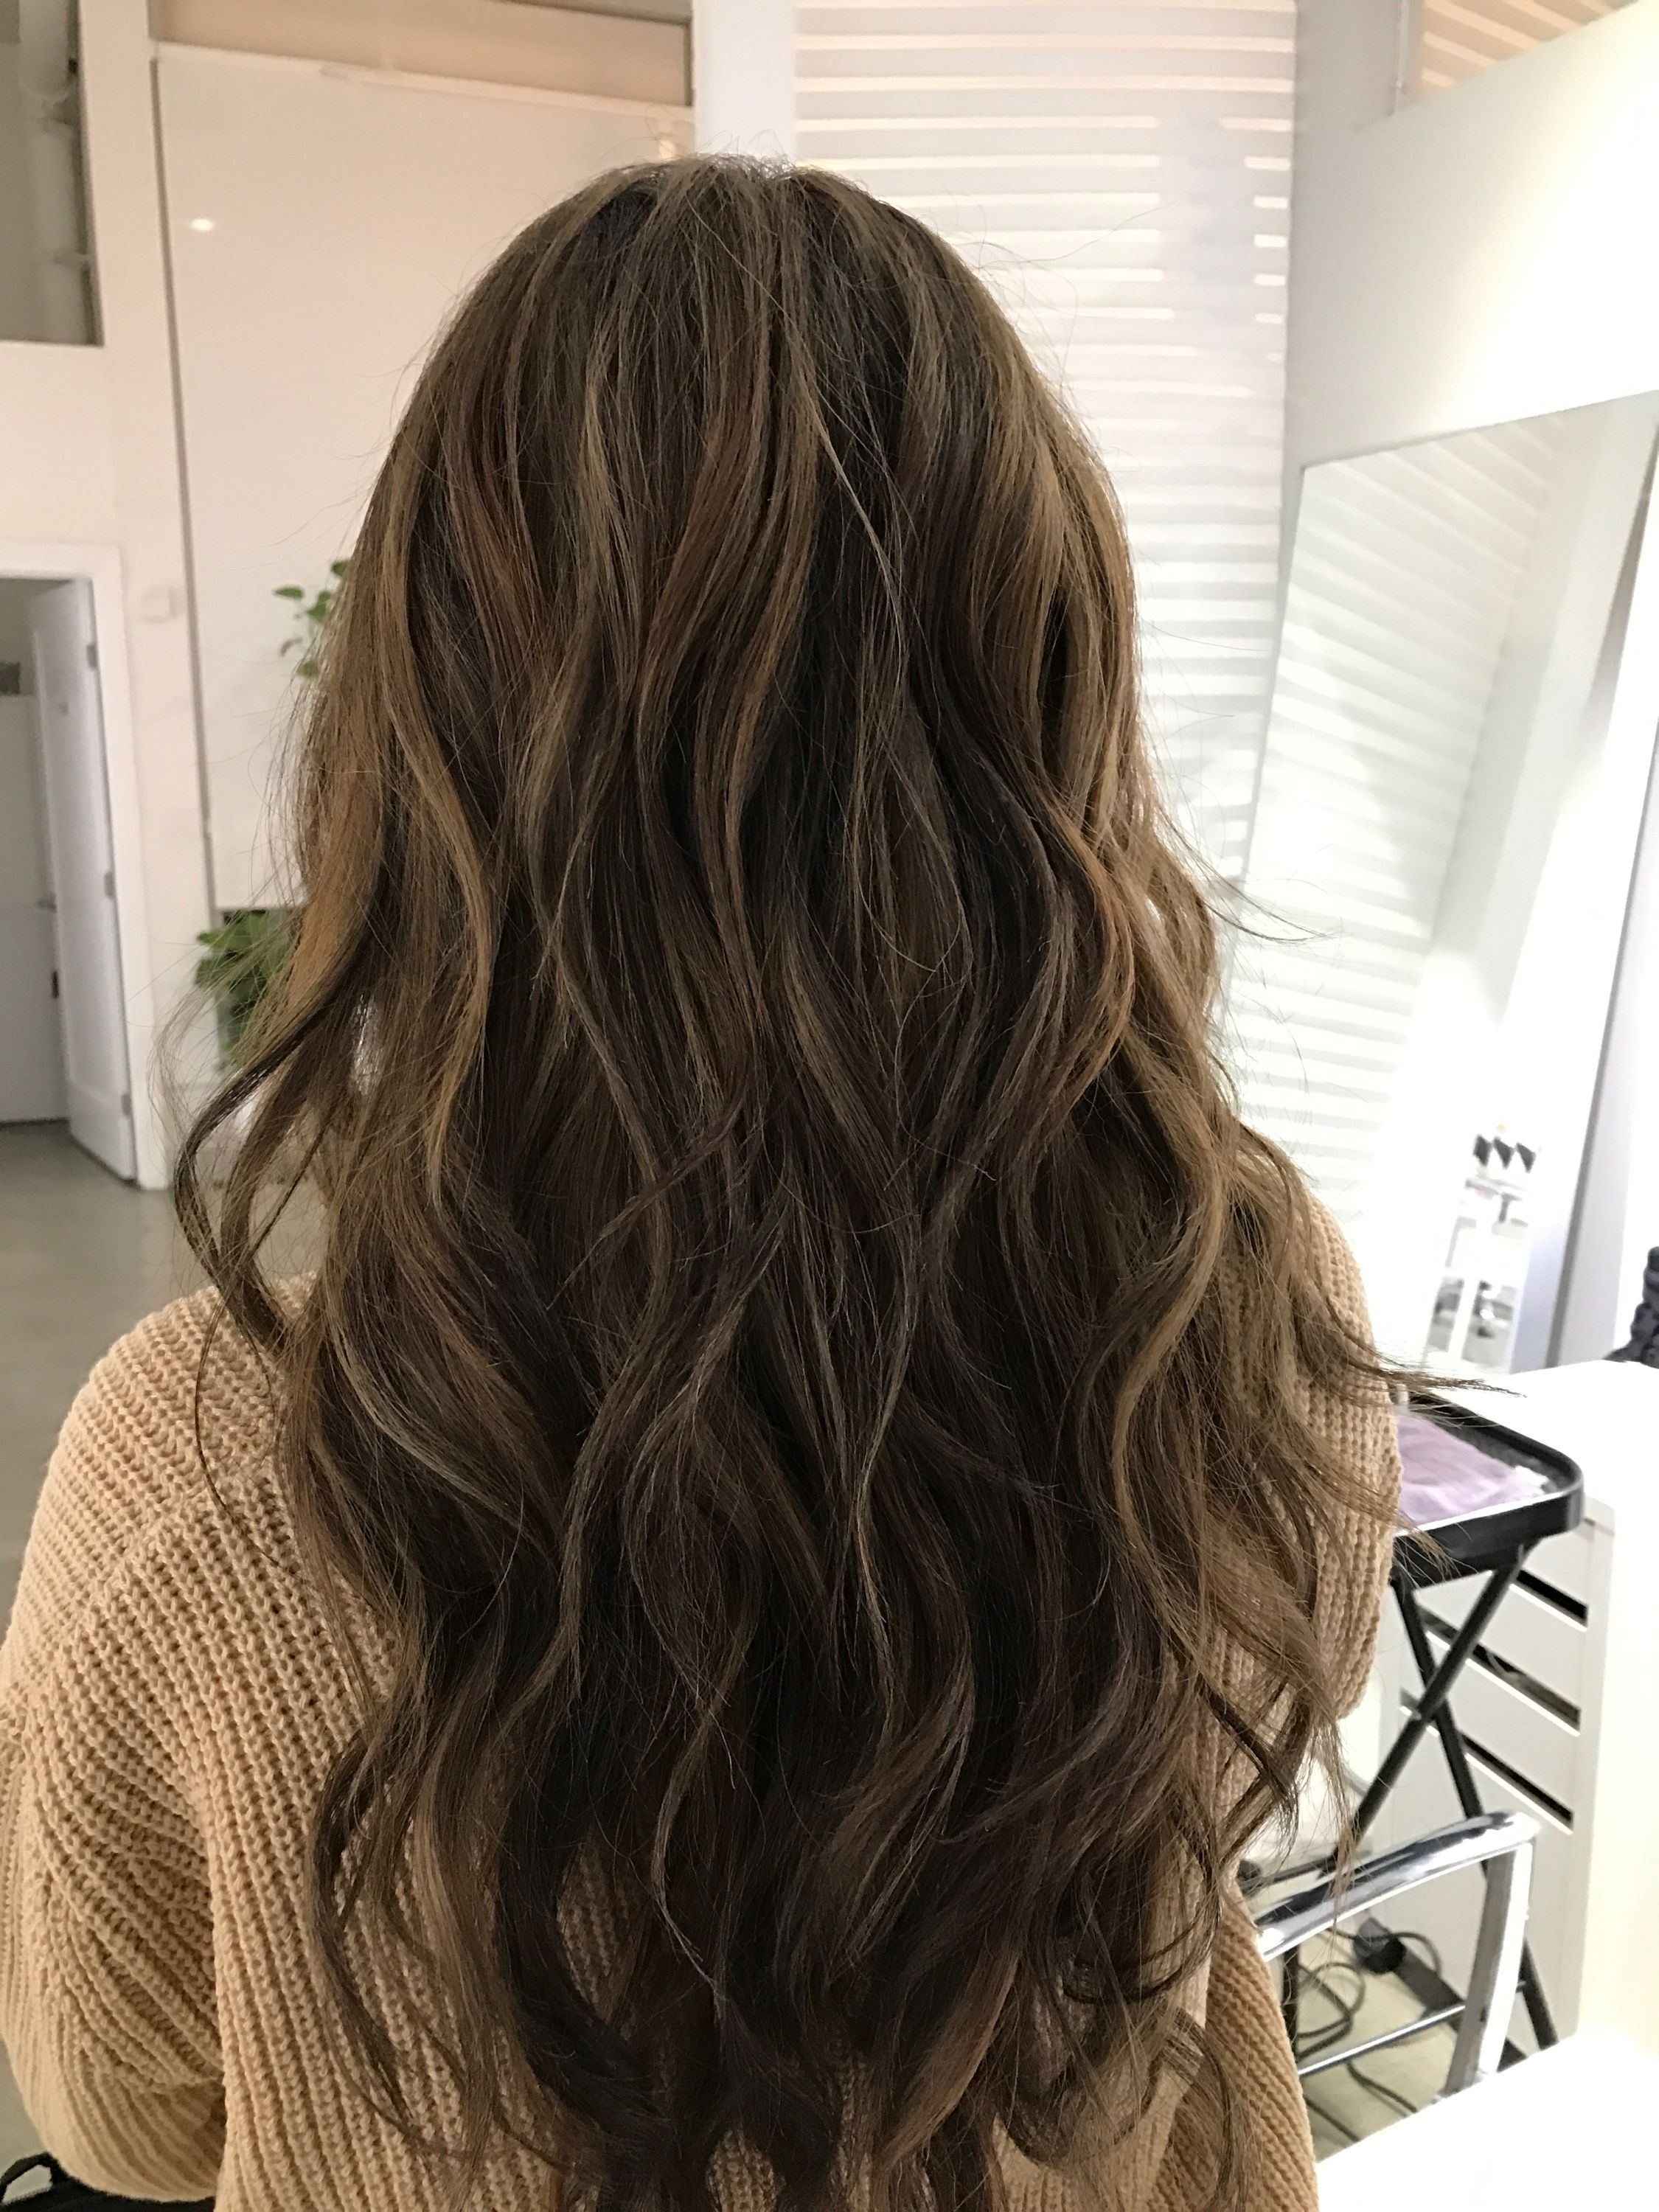 Light Brown Hair With Lowlights ⓗⓐⓘⓡ Amp ⓑⓔⓐⓤⓣⓨ Pelo